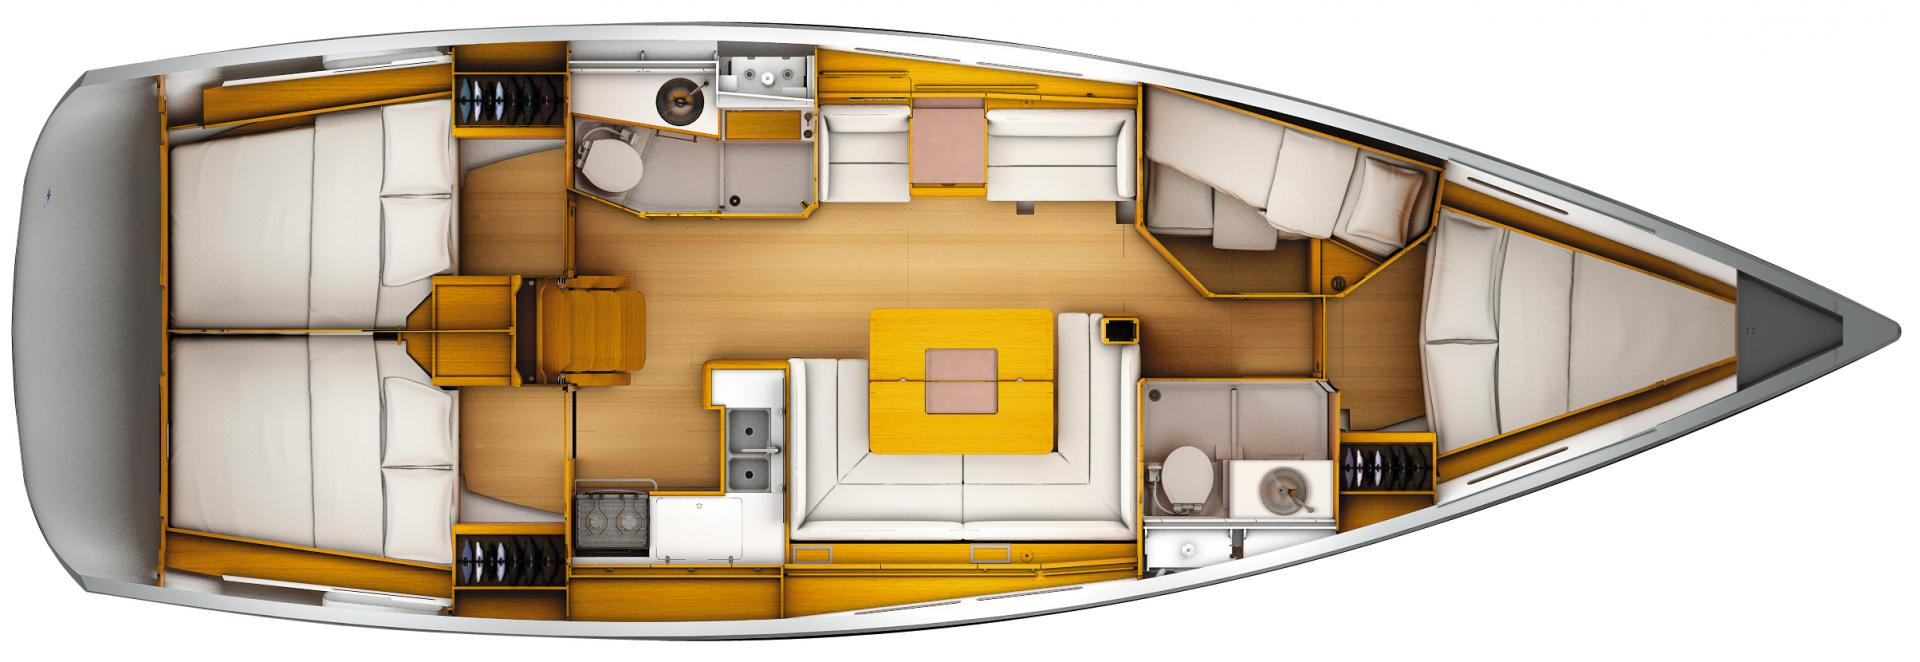 Yachts with 4 cabins sun Odyssey 449 macrocruise charter